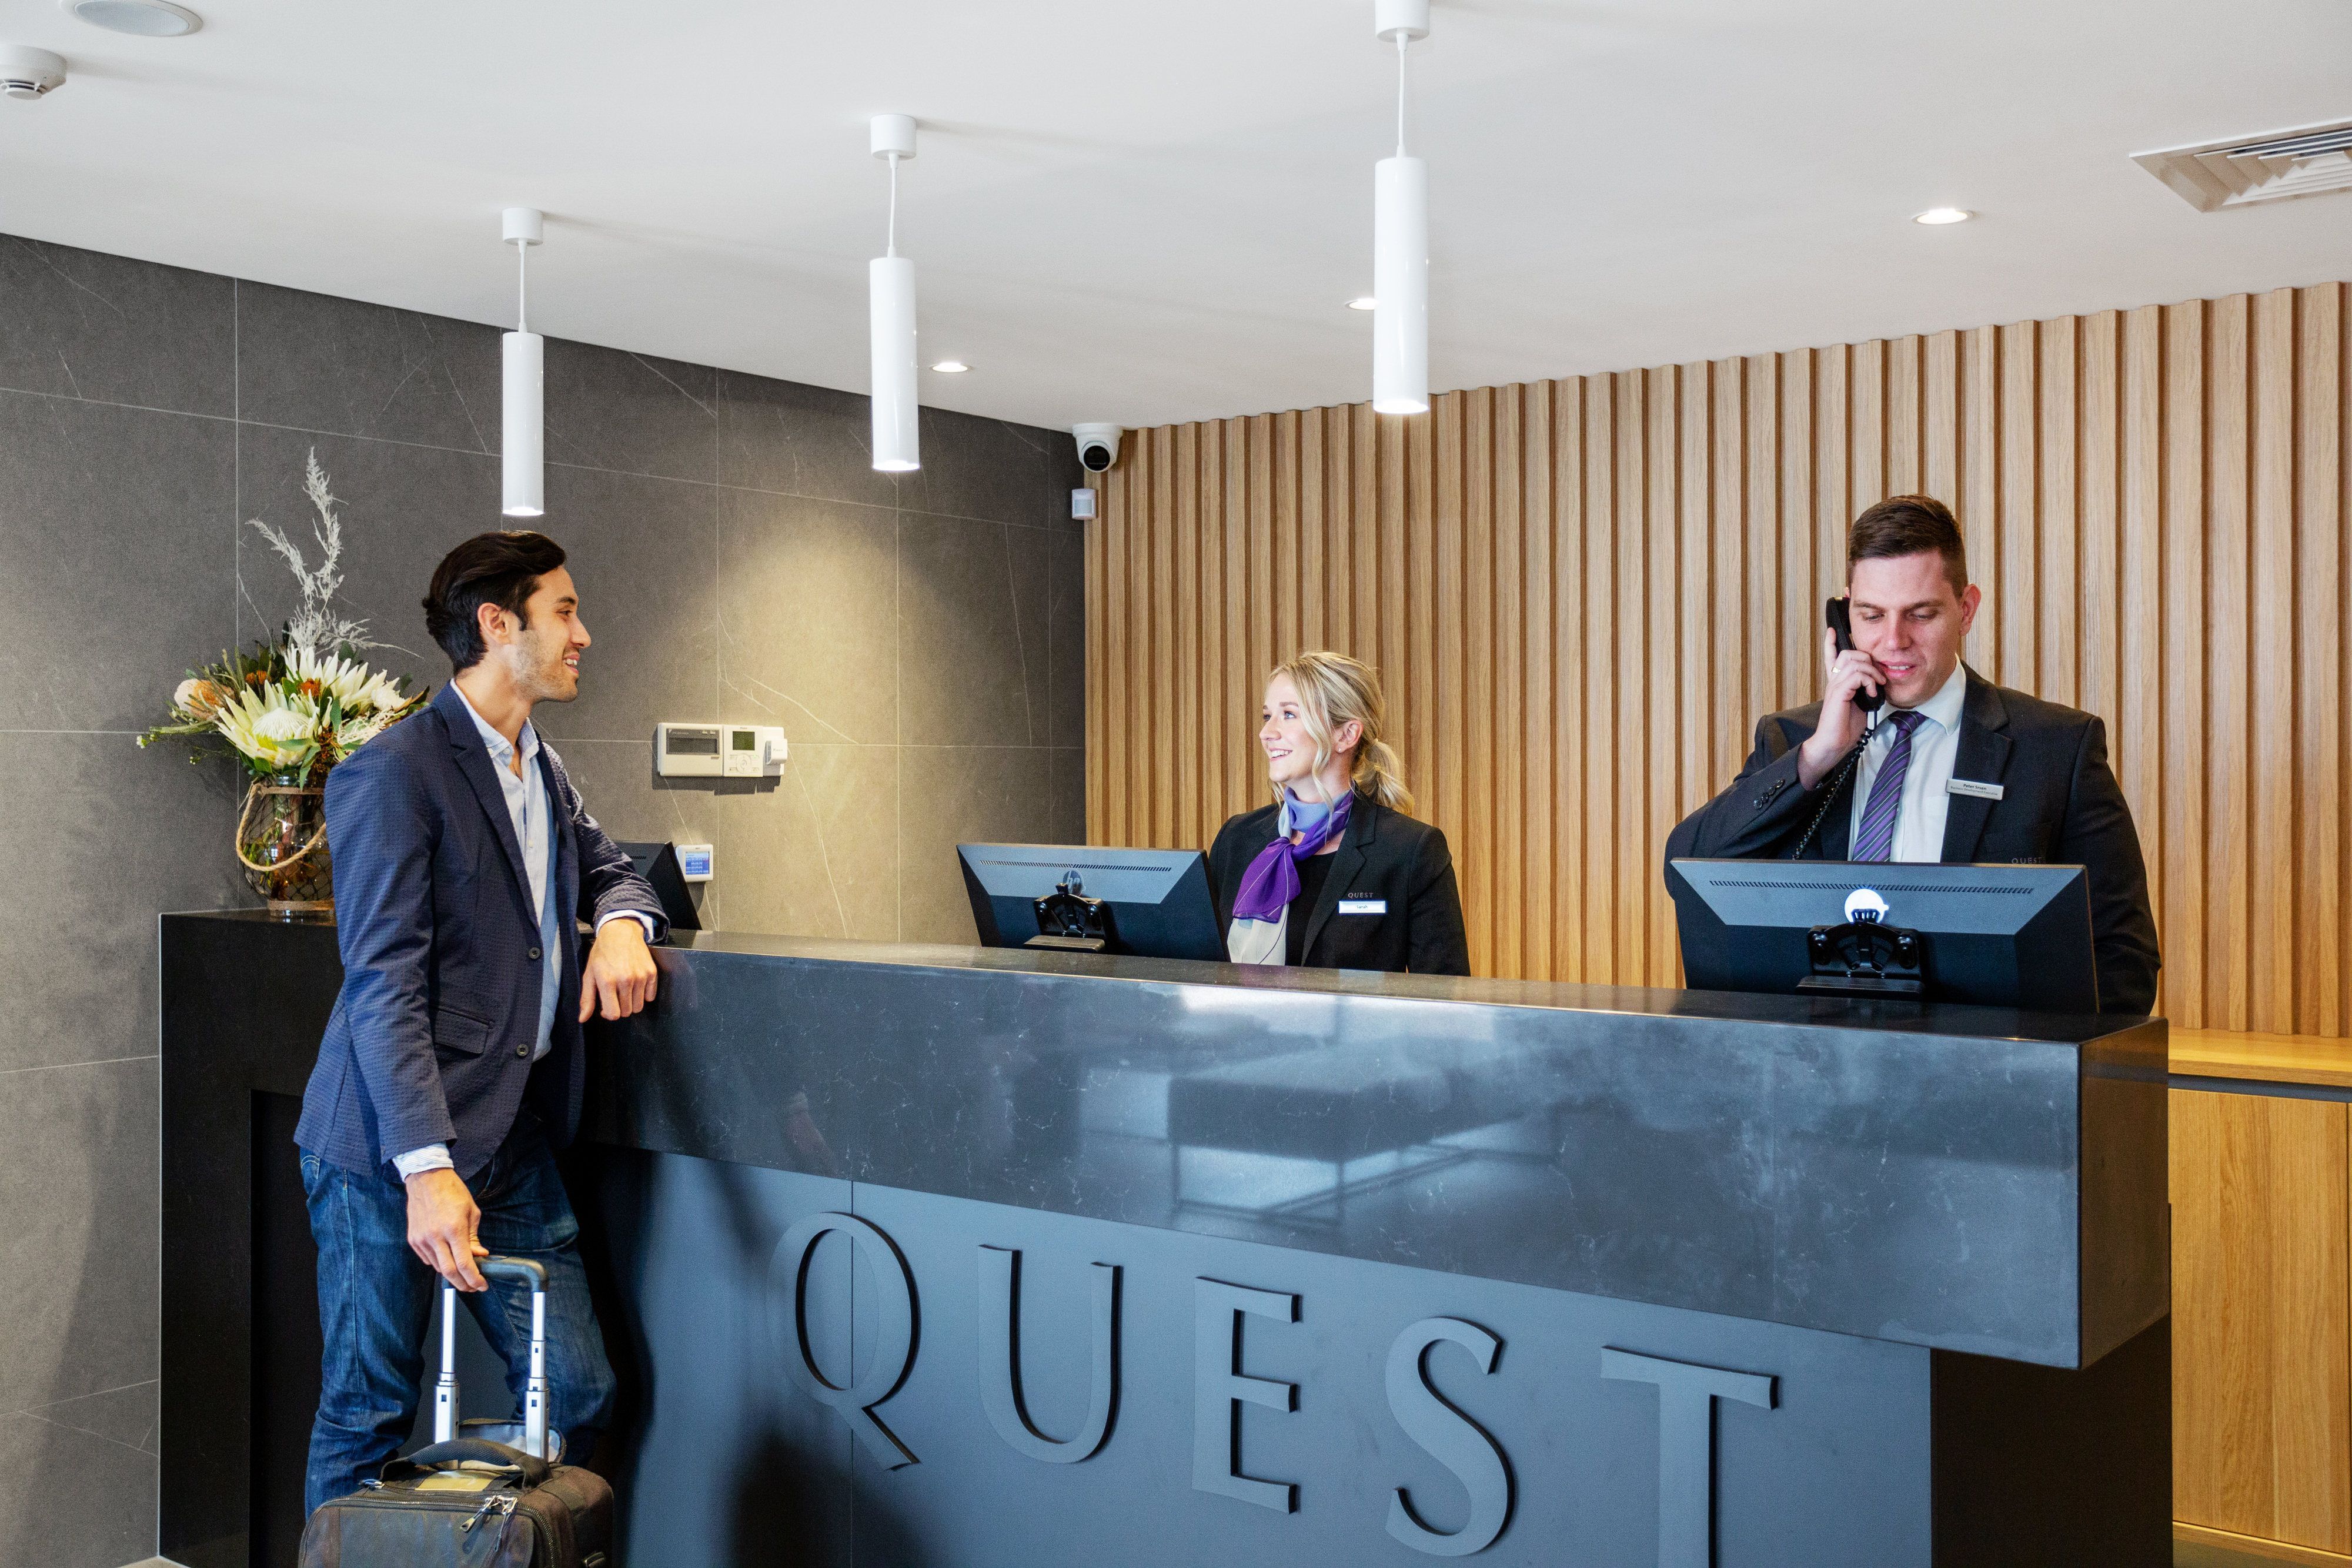 Quest relaunches community support program | Inside Franchise Business Executive